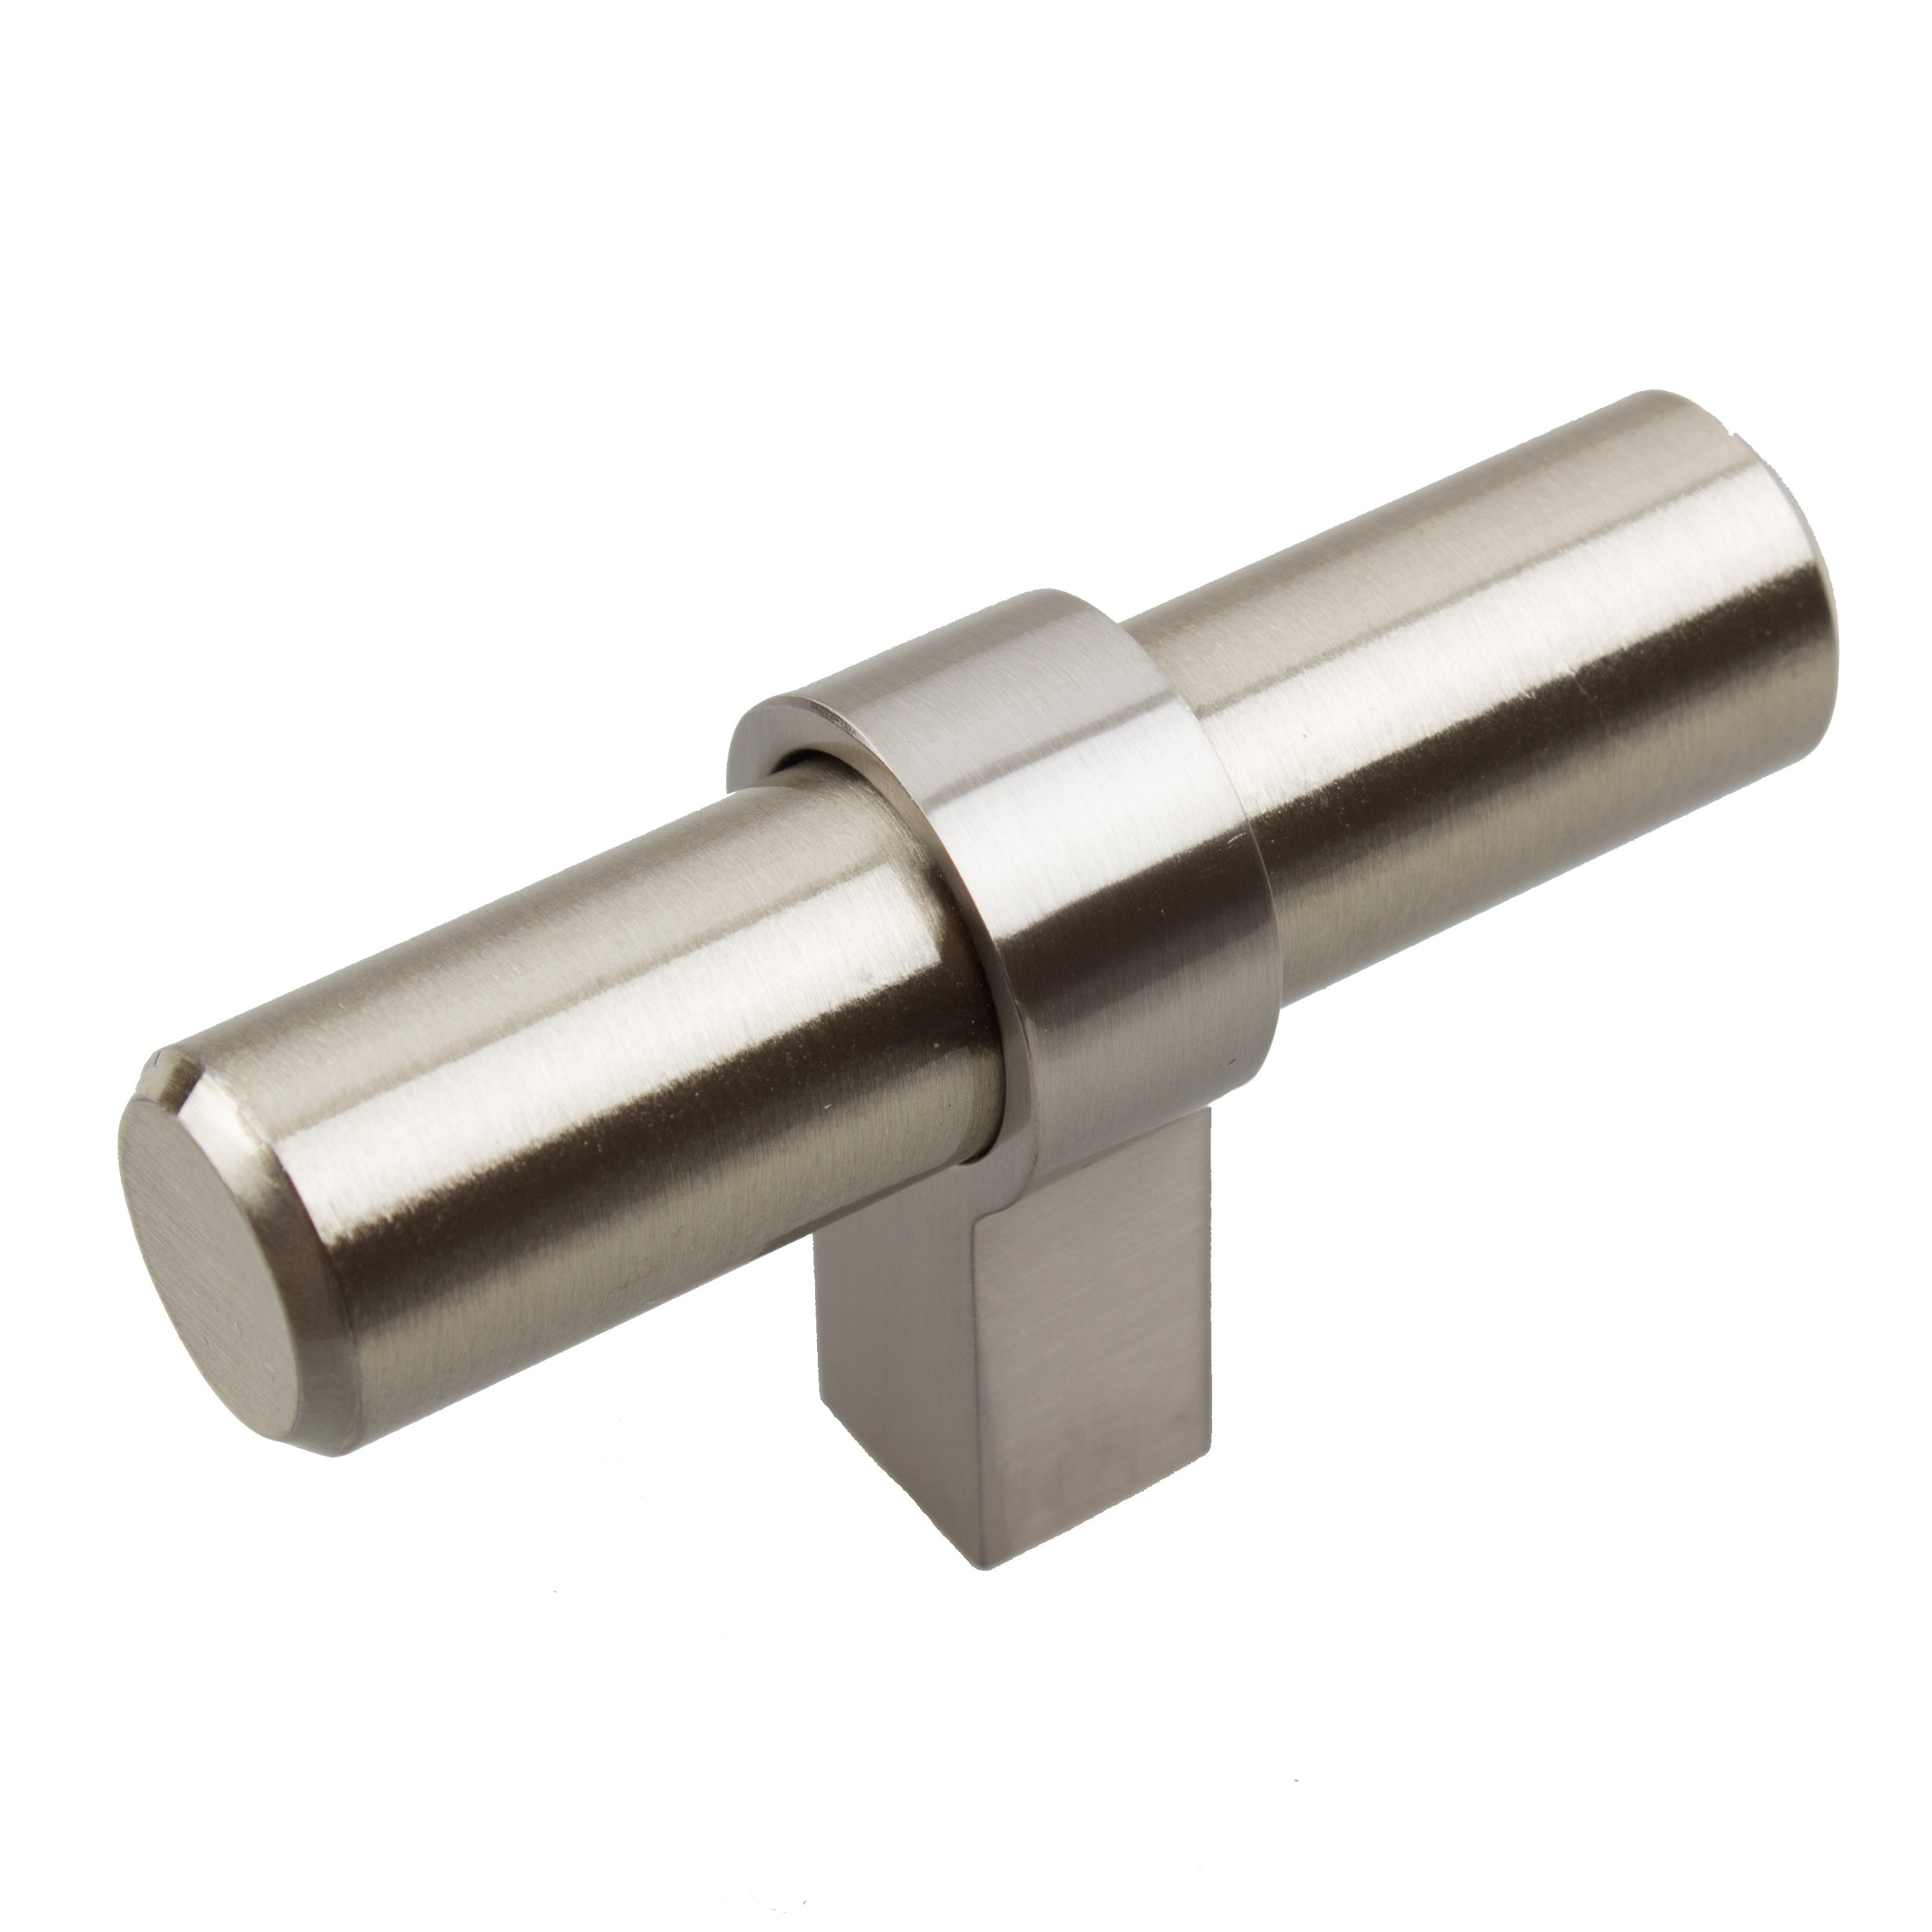 GlideRite Hardware 4002-T-SS-50 Solid Euro T-Bar Handle Knobs, 50 Pack, 2.25'', Stainless Steel